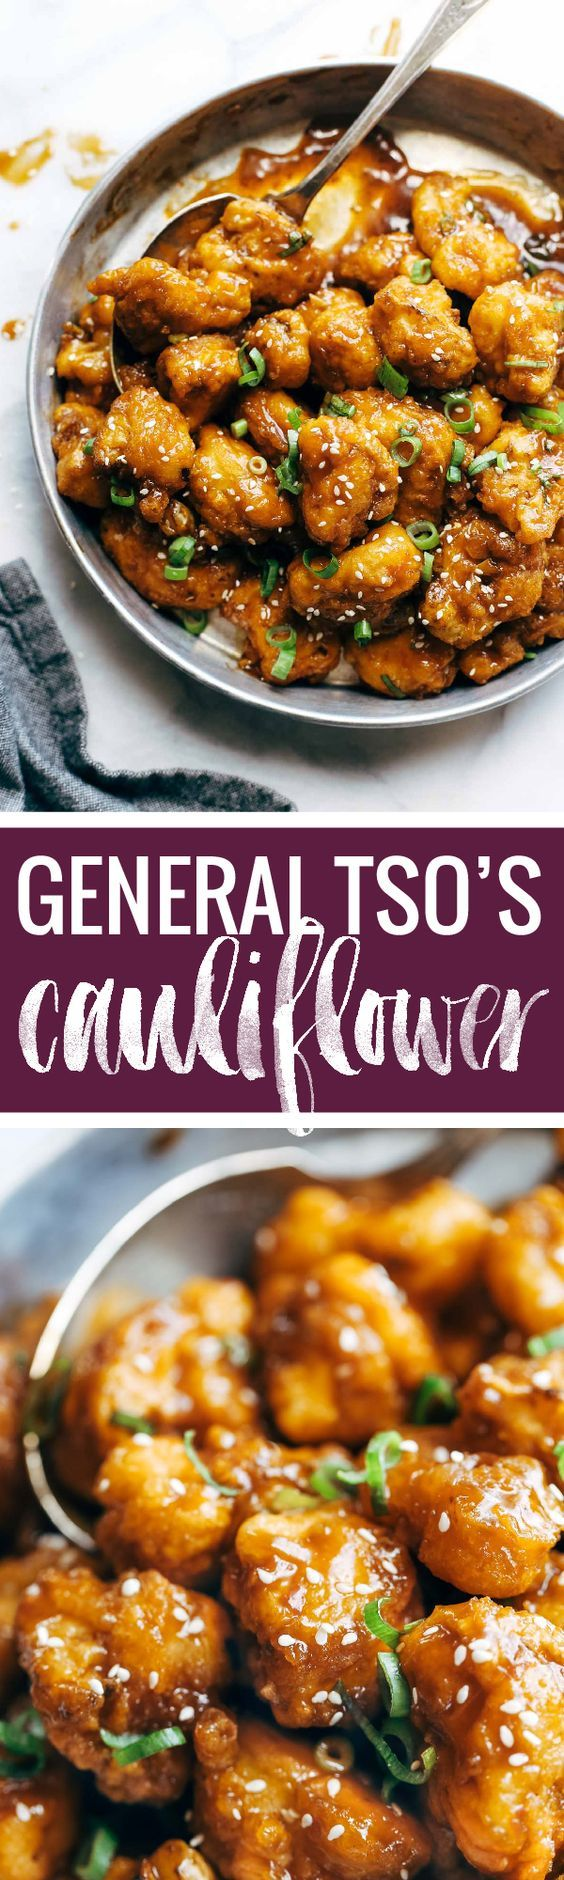 General Tso's Cauliflower - golden brown crispy fried cauliflower tossed in a made-from-scratch spicy sweet sauce. Awesome vegetarian / meatless recipe. | http://pinchofyum.com